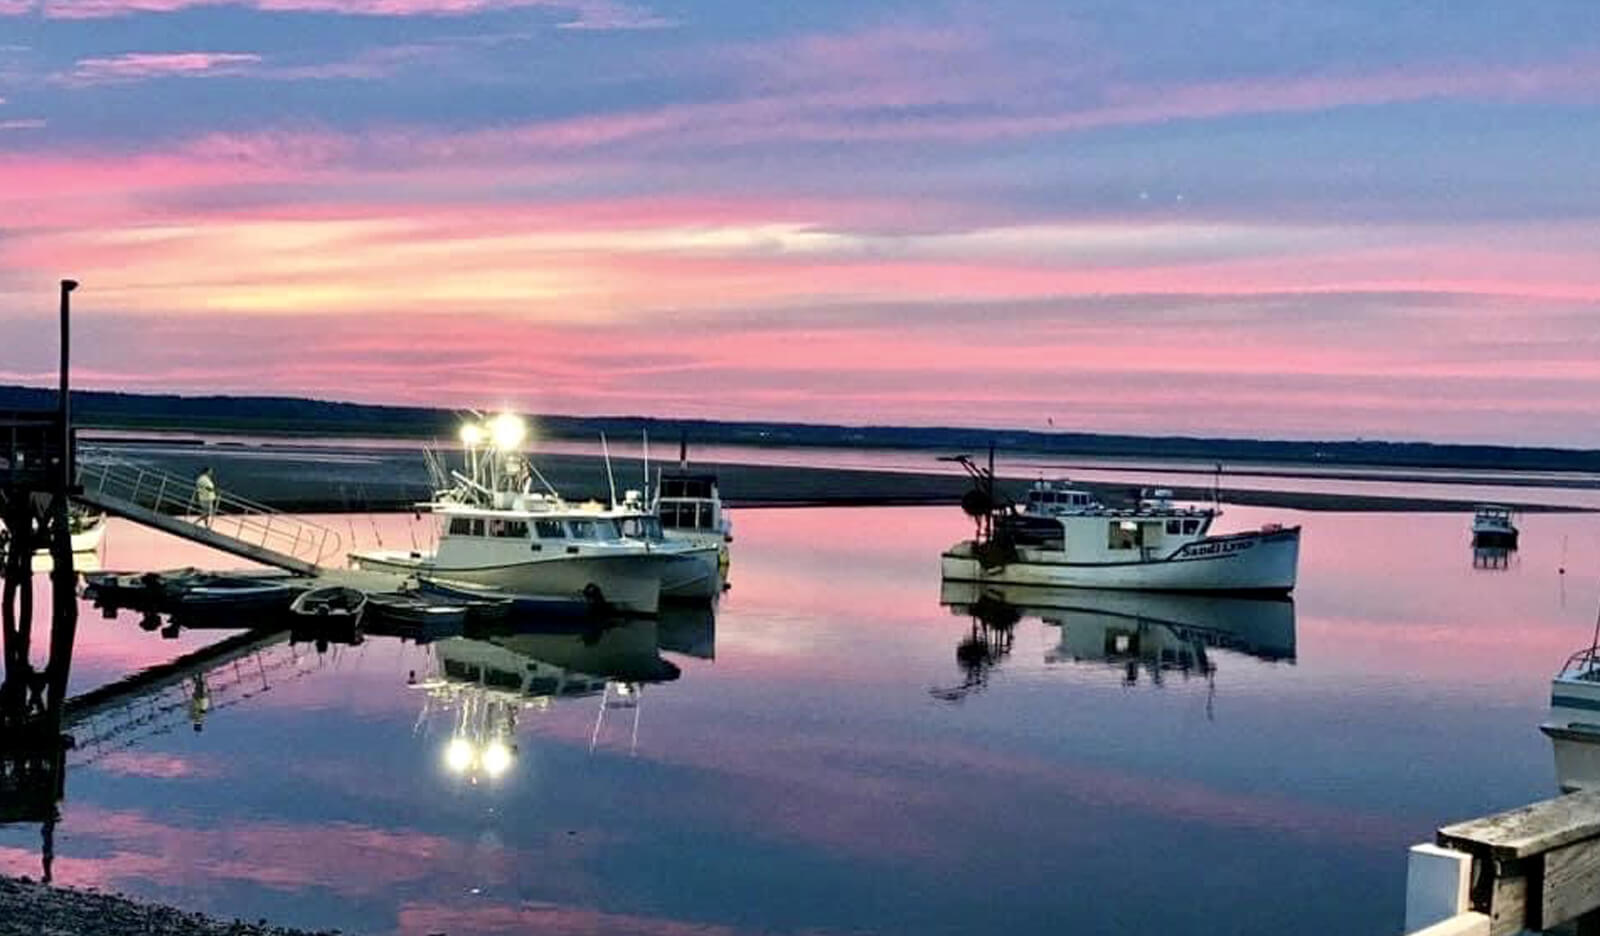 charter boats at beach - best charter tuna boat in seabrook new hampshire